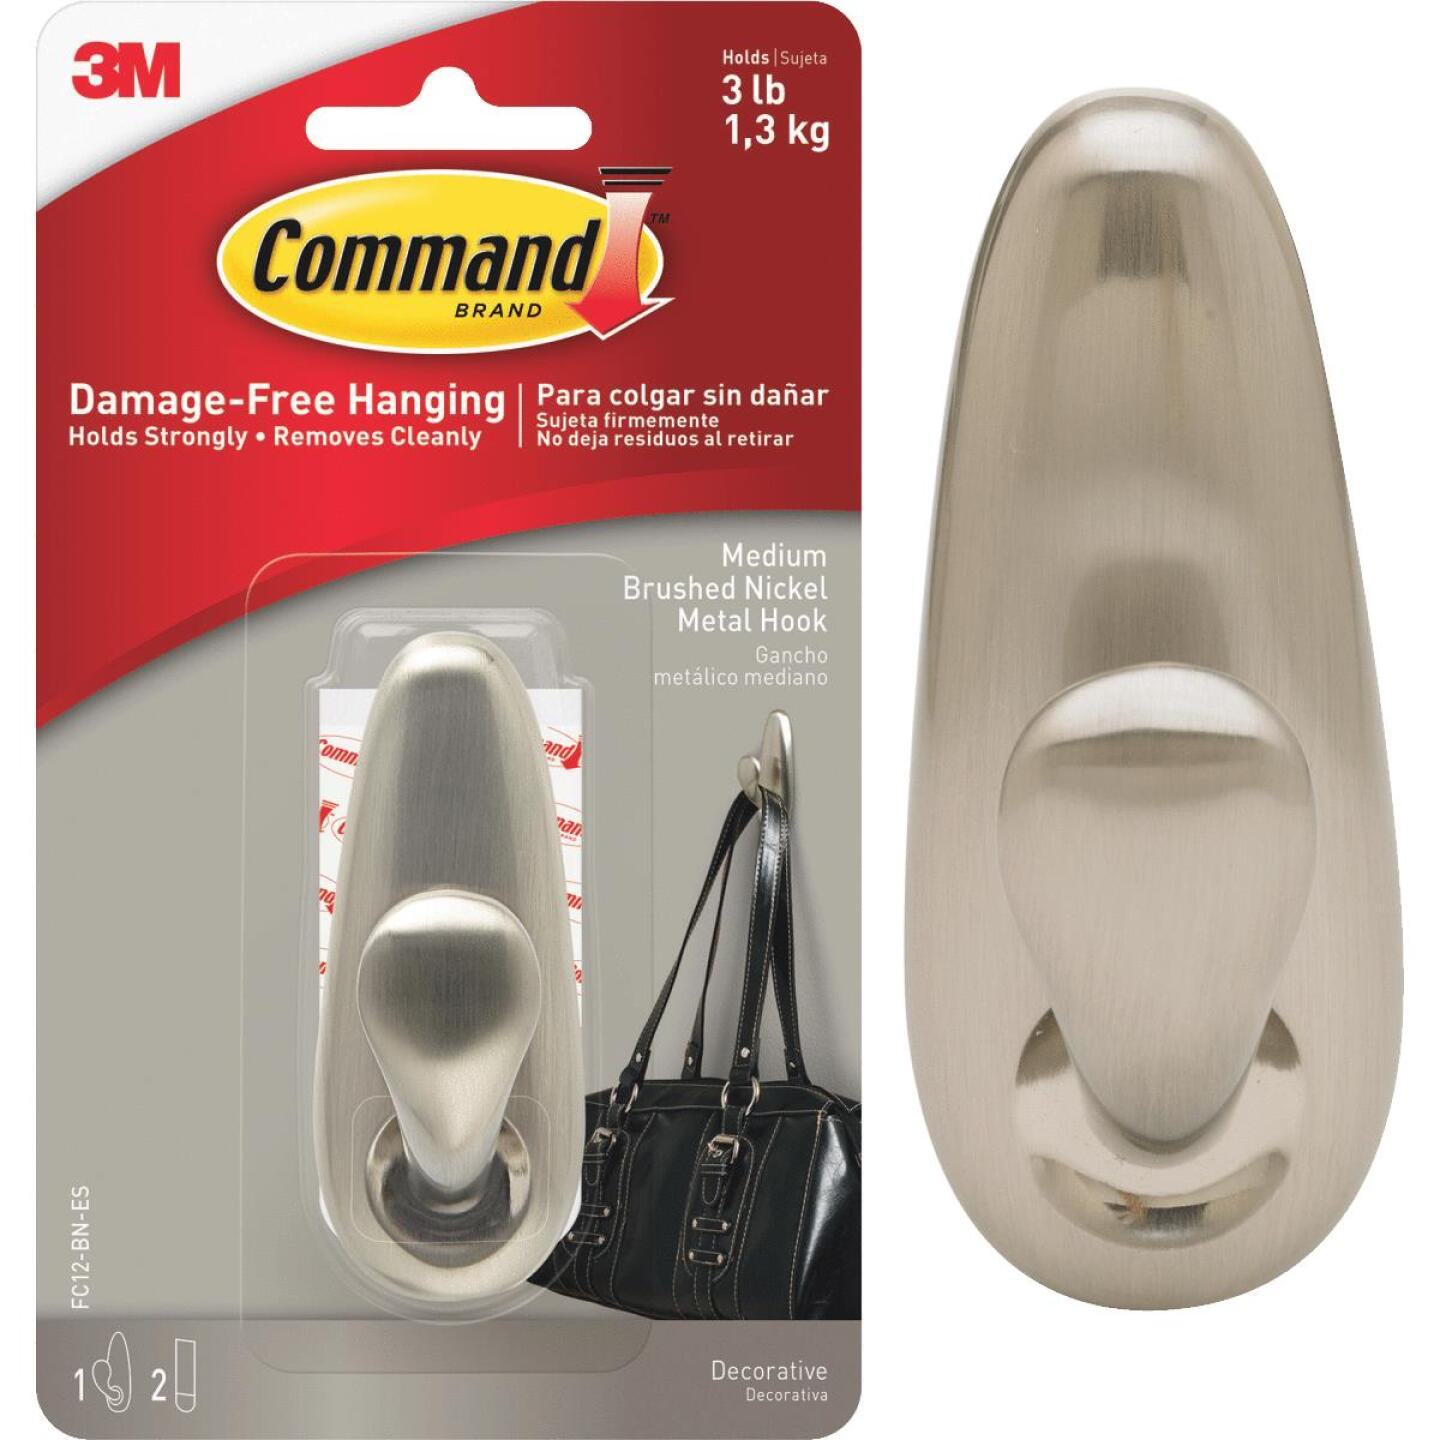 Command 1-1/4 In. x 3-1/4 In. Decorative Fashion Classic Metal Adhesive Hook Image 1